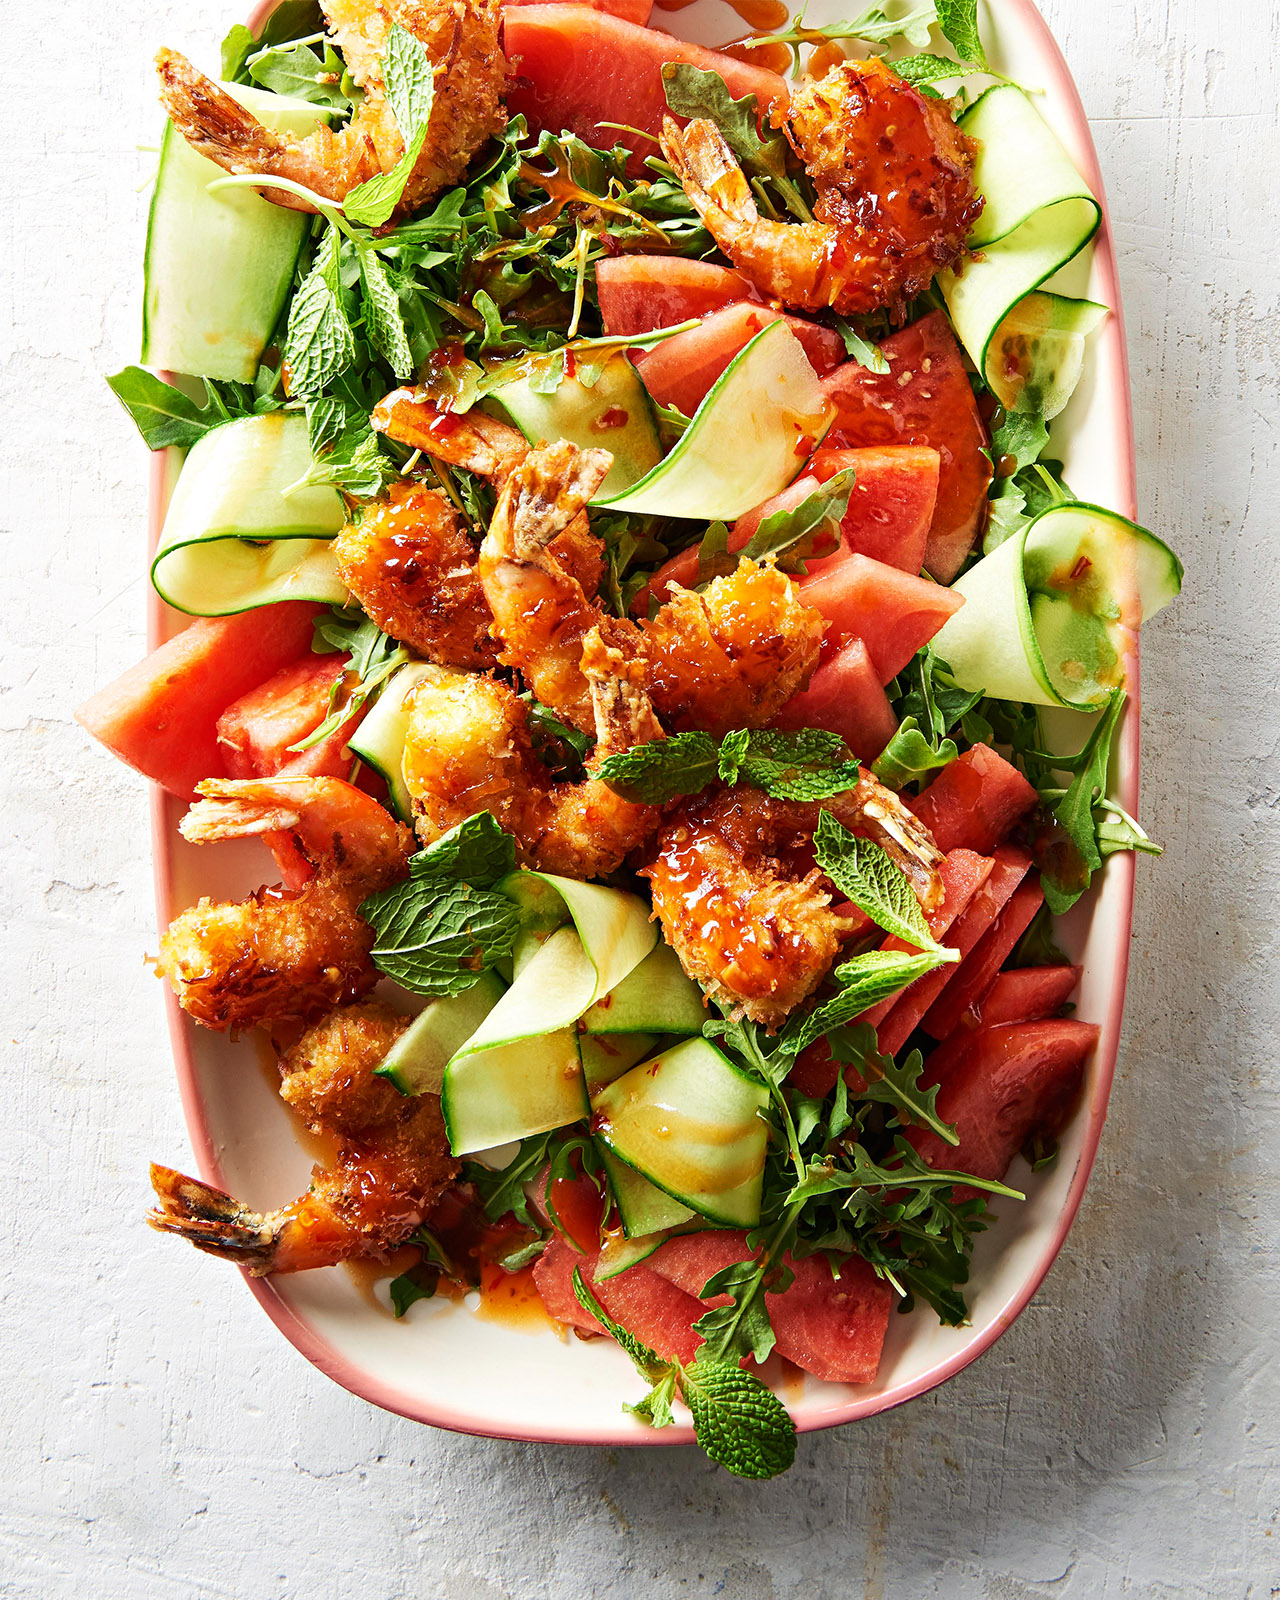 Coconut Shrimp and Watermelon Salad